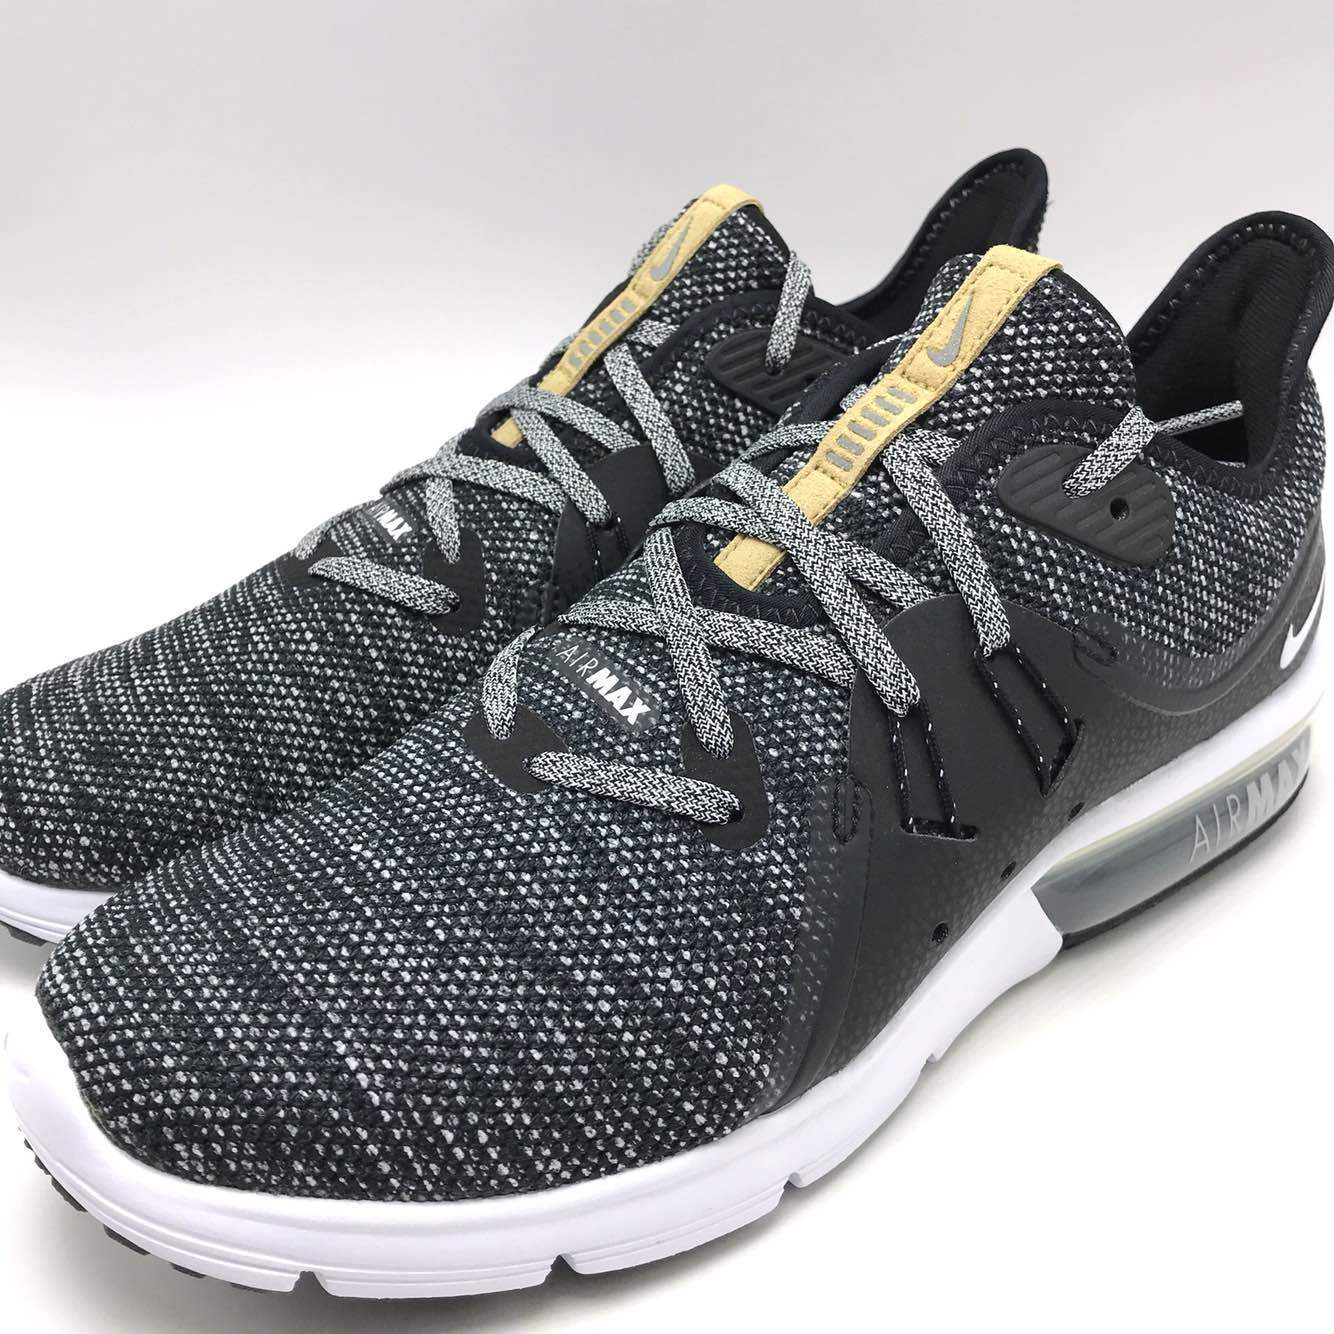 Nike Air Max Sequent 3 Men's Running Shoes Black/White-Dark Grey 921694-011